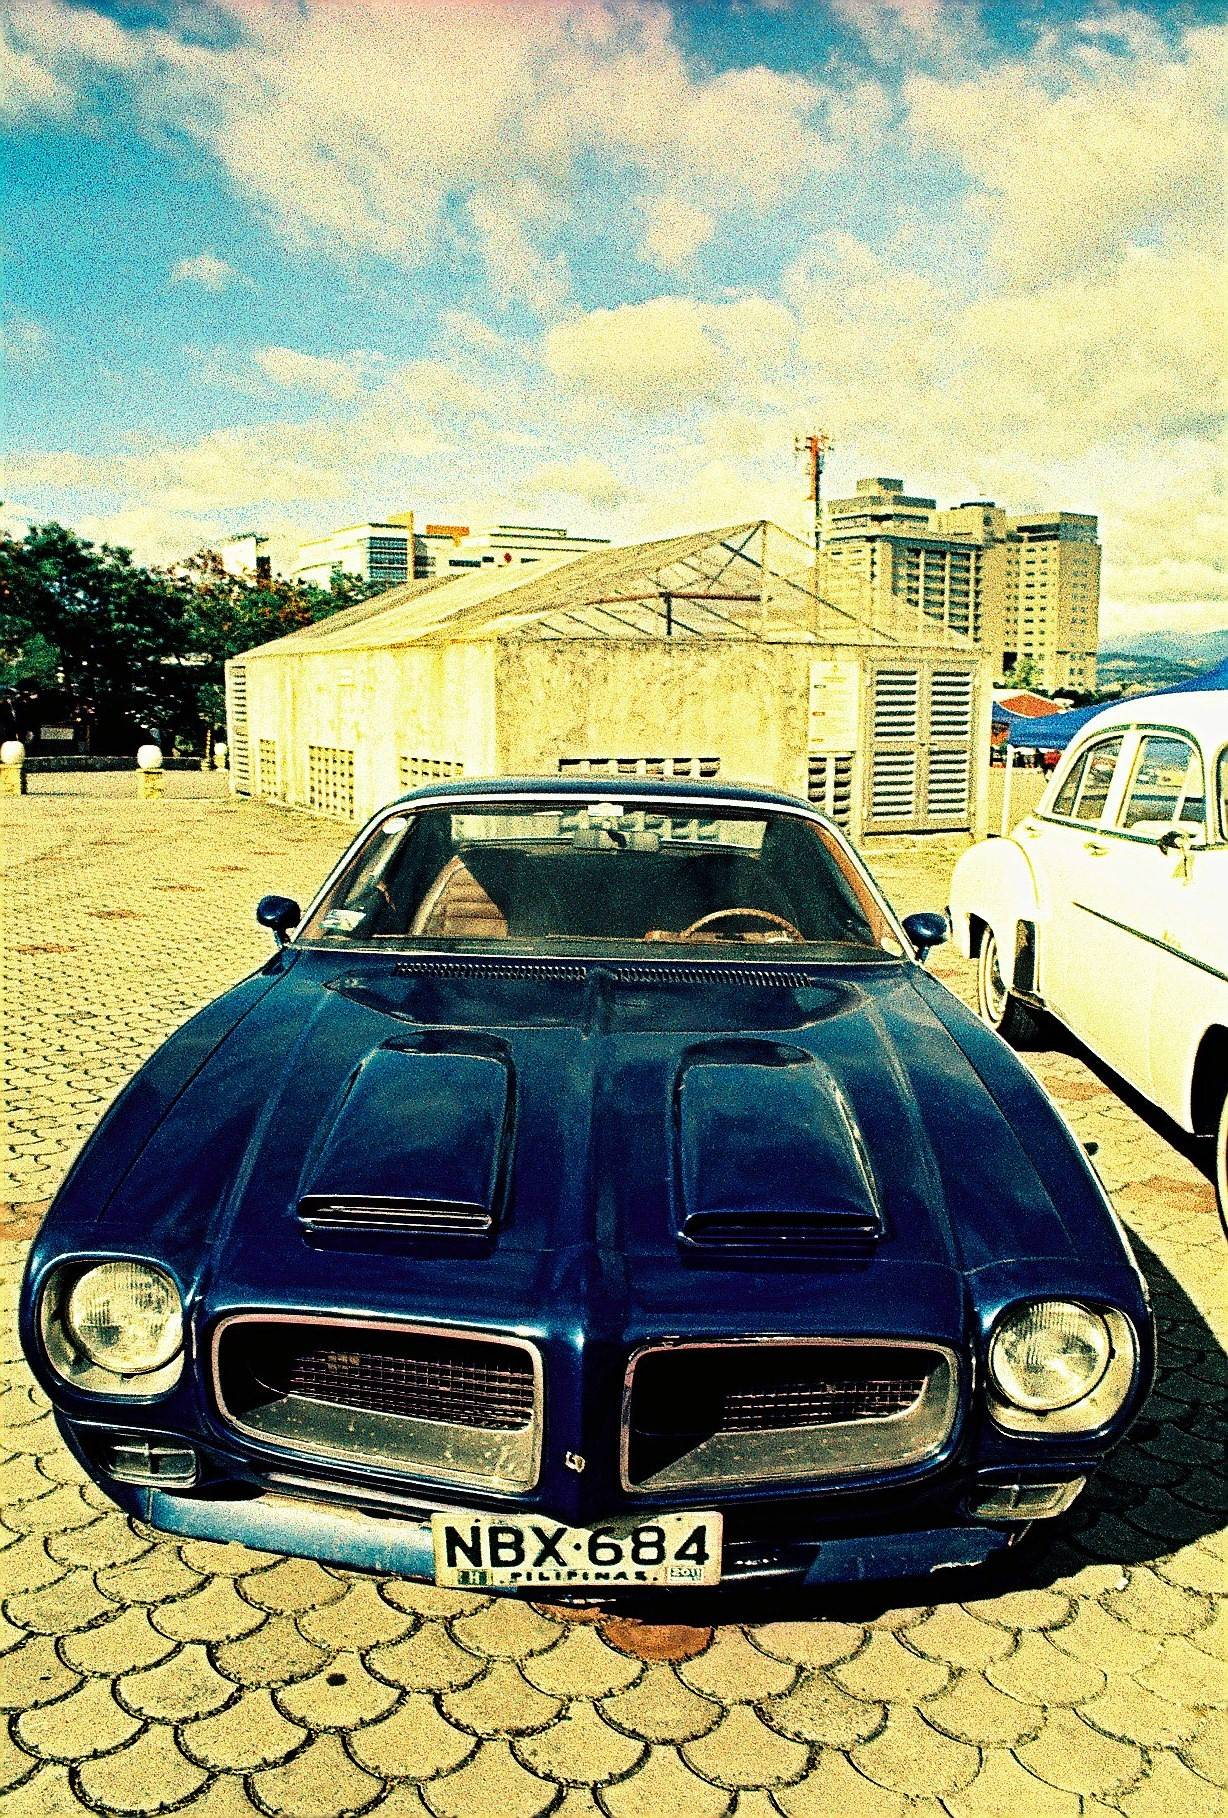 Awesome Cars, Awesome Film — feelux · LomographyAwesome Cars, Awesome Film - 웹